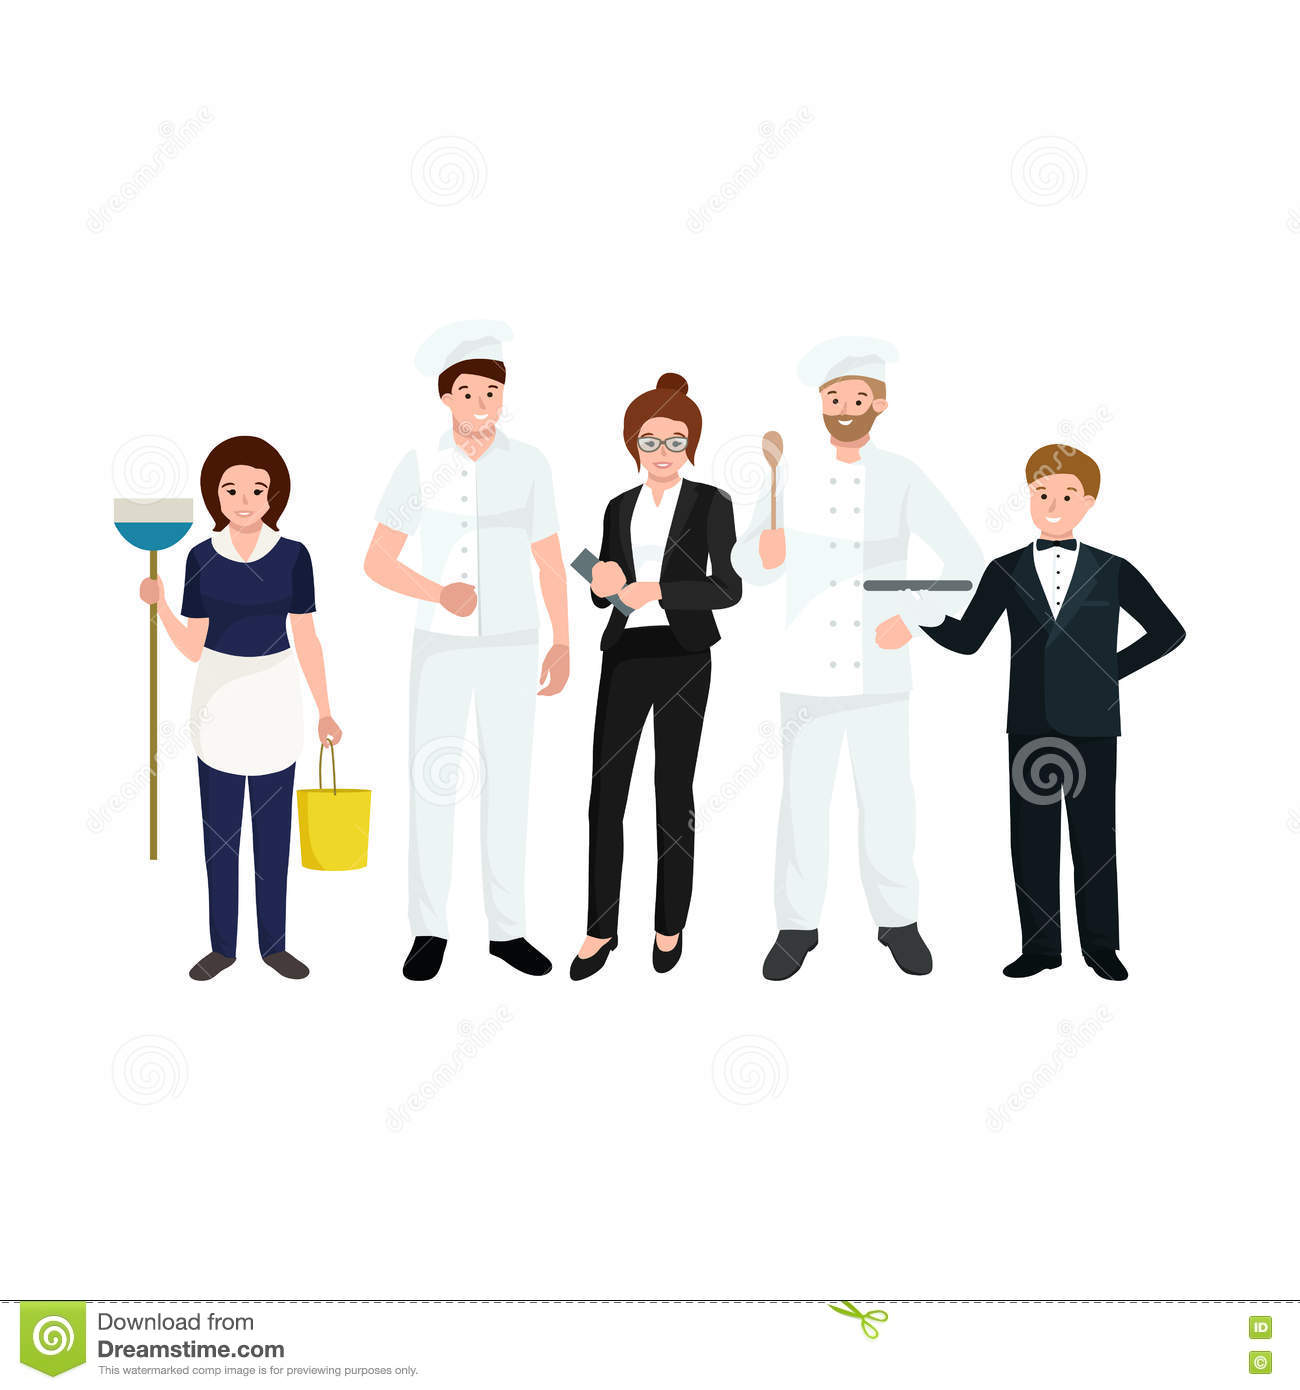 Restaurant manager clipart 5 » Clipart Station.